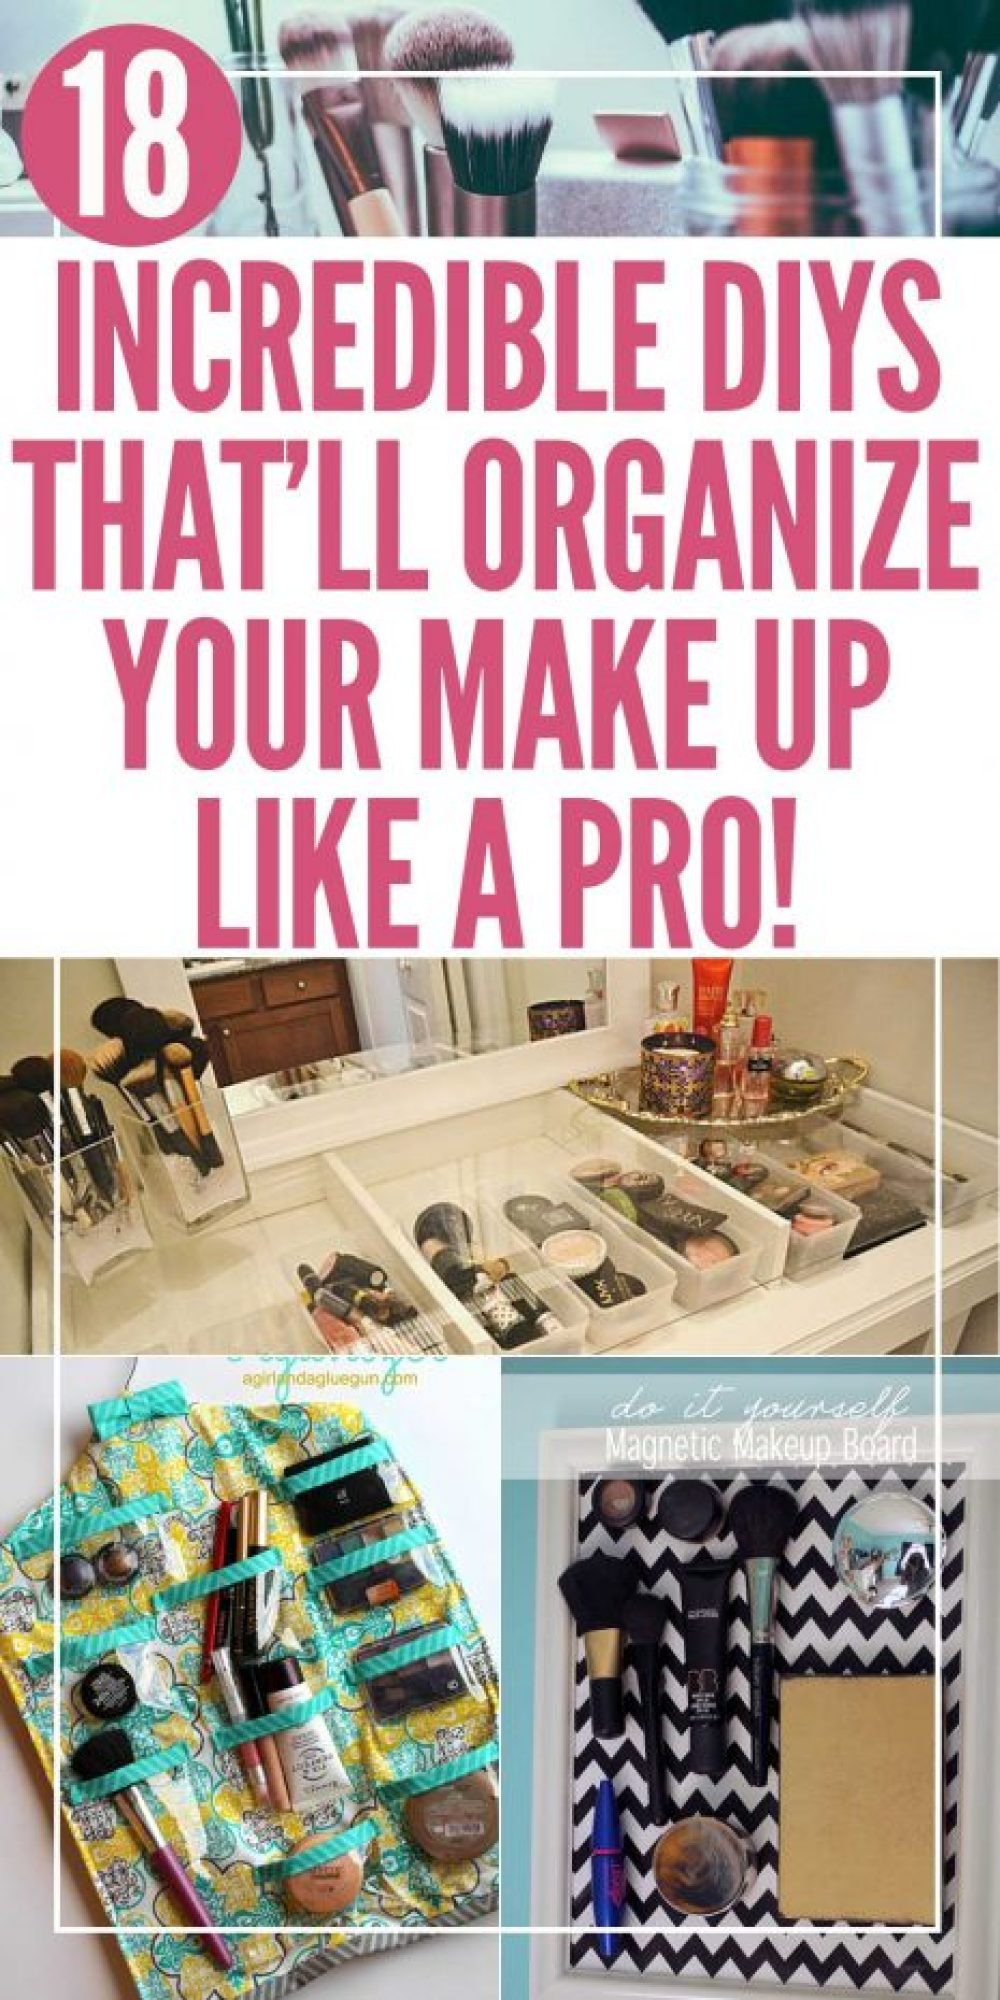 Make up storage ideas and diy projects to organize and reorganize all of your cosmetics and beauty tools so everything's easy to find! Get a vanity area worthy of a Youtuber with these fun and easy tutorials!